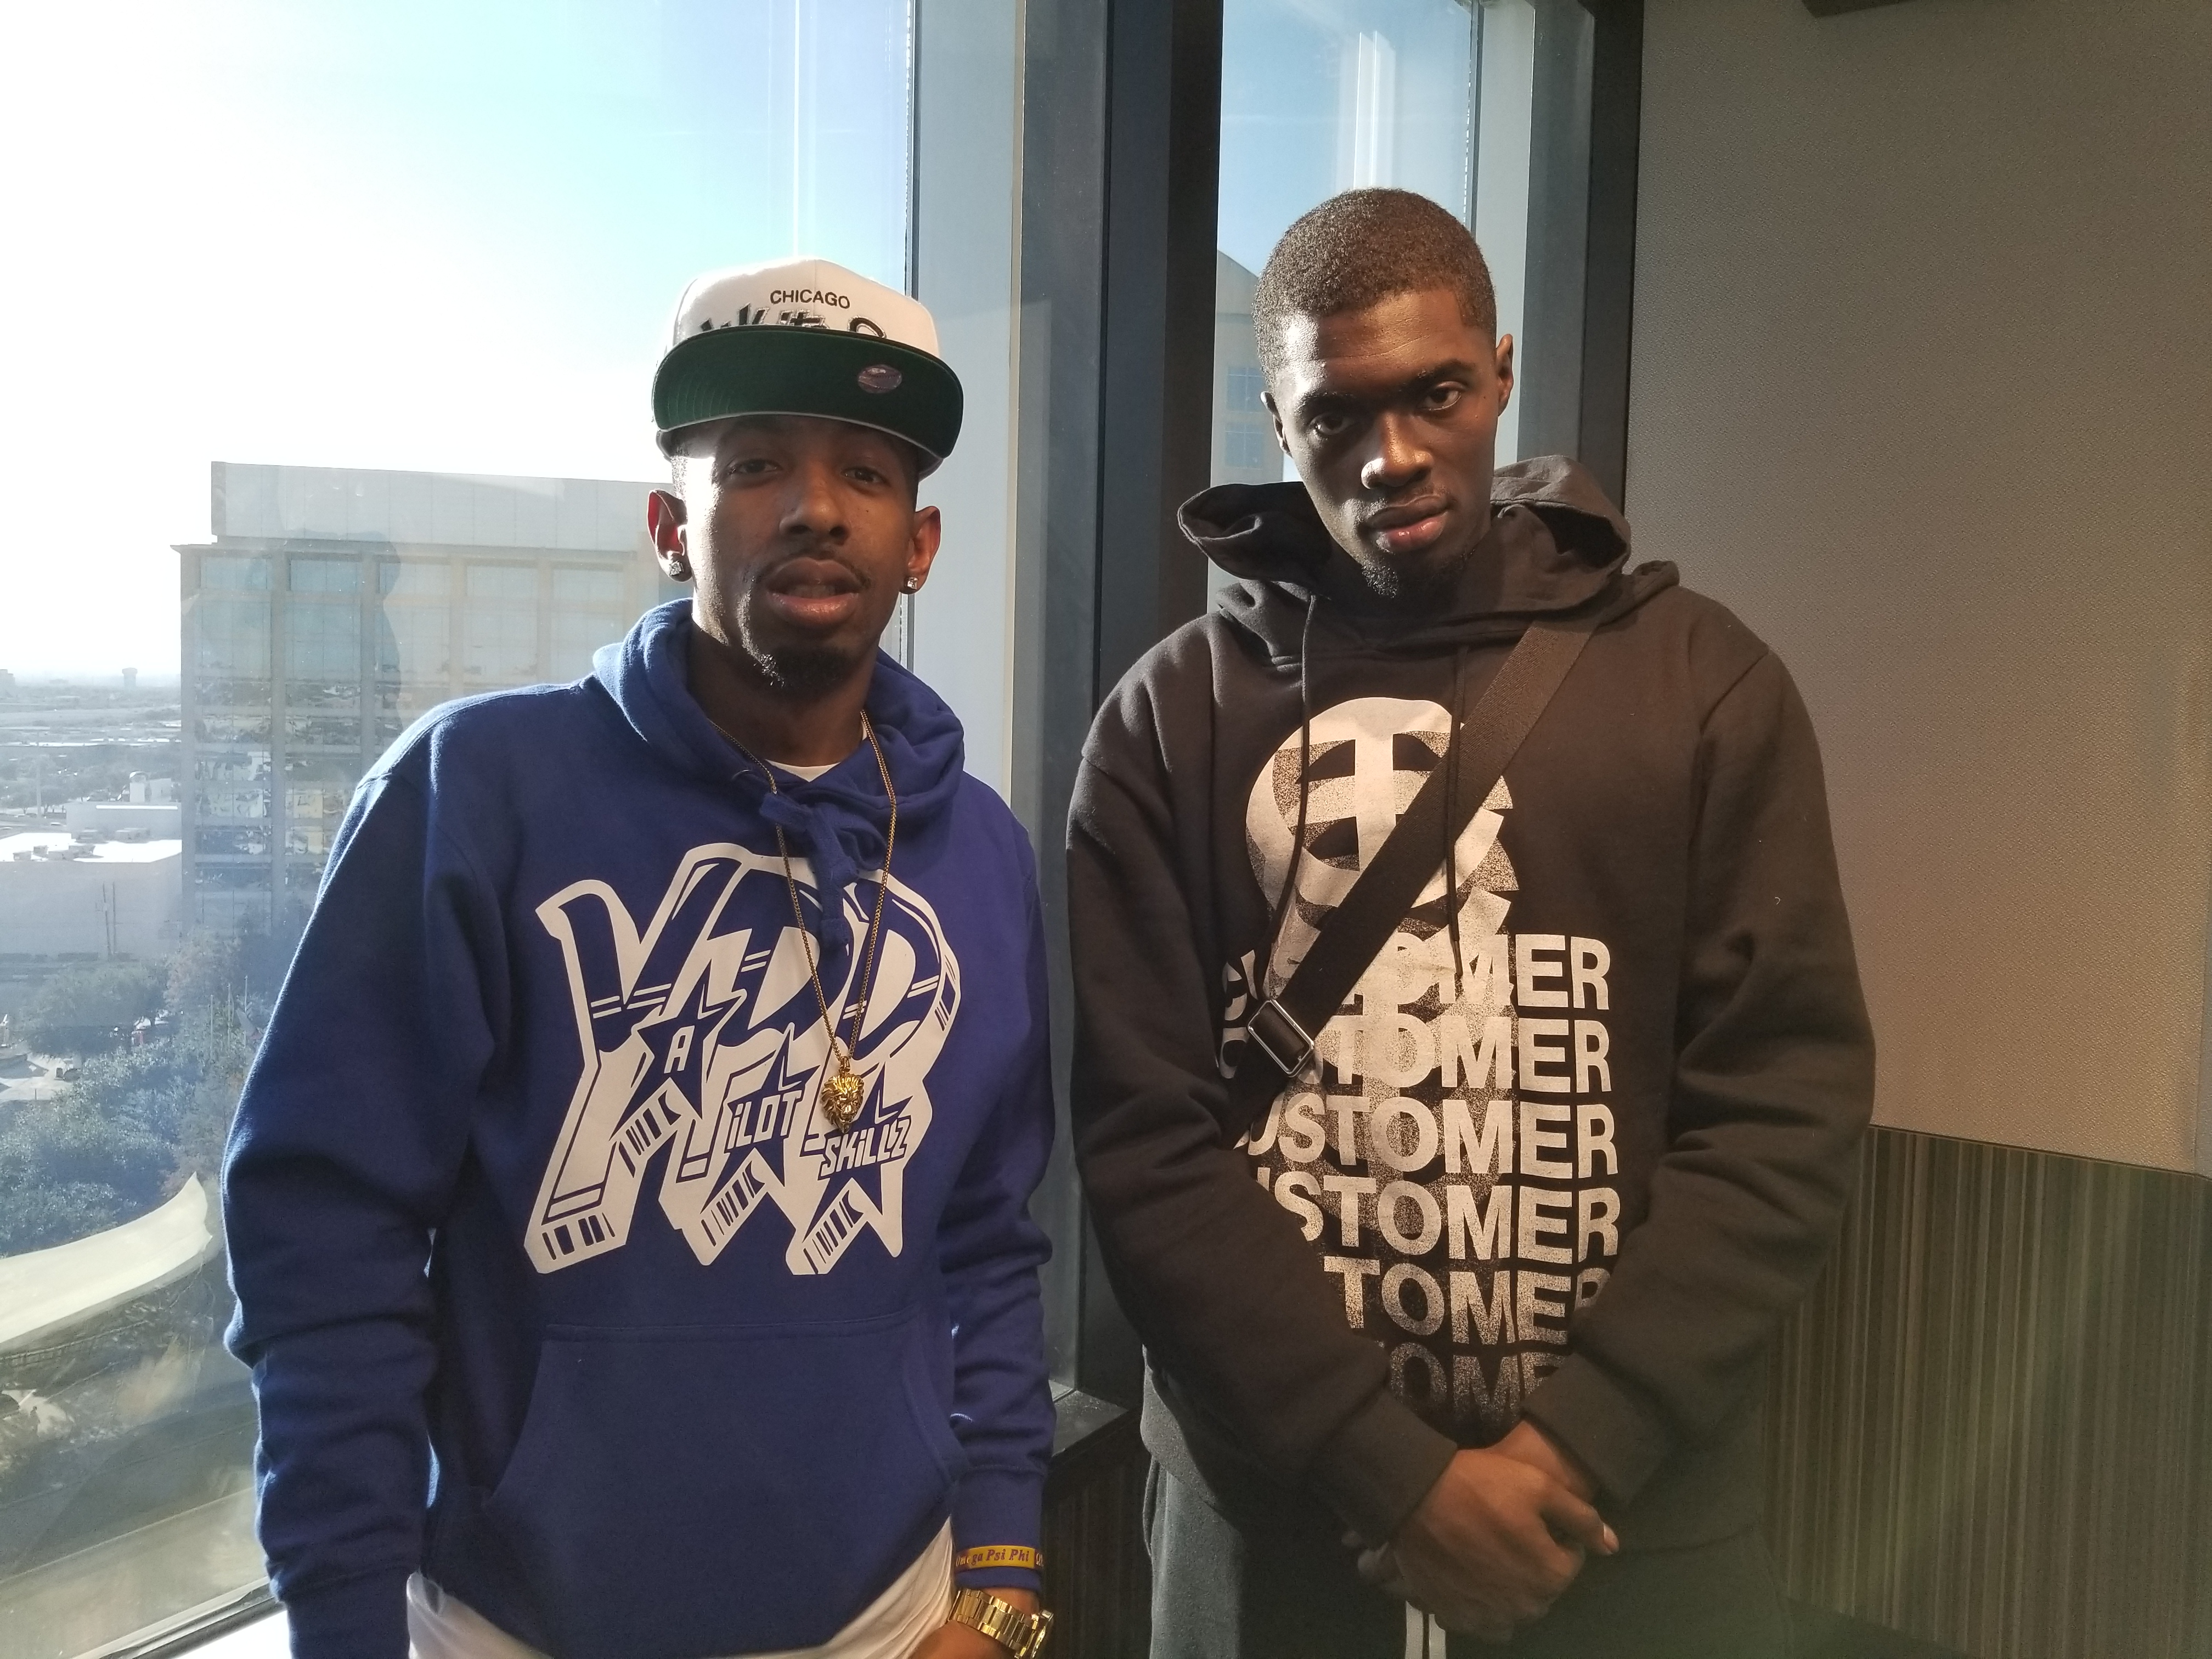 Sheck Wes and P-Skillz